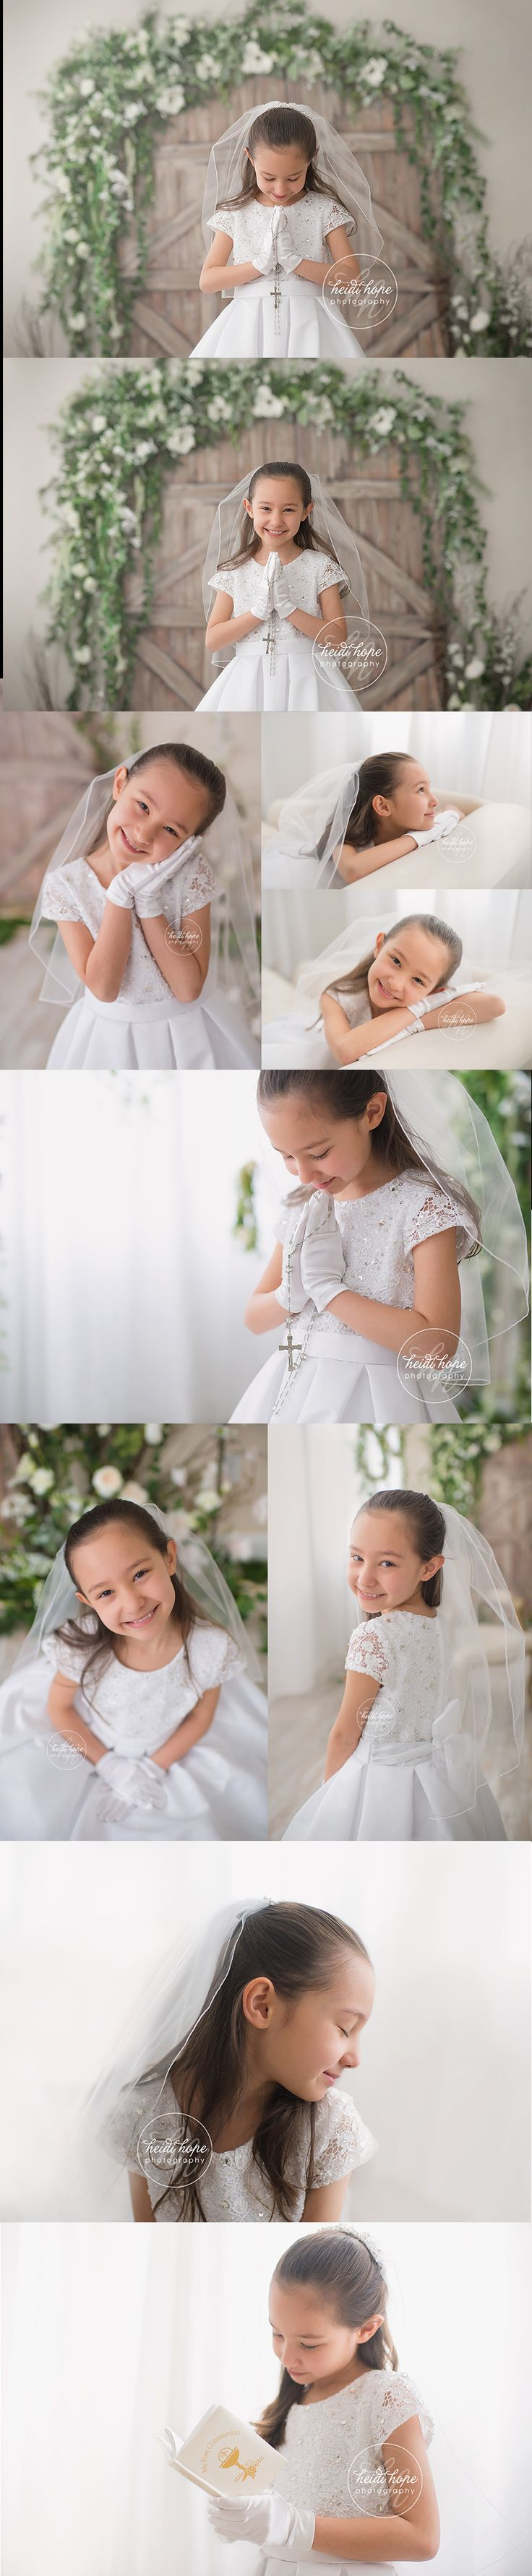 rhode island and boston first holy communion 2017 portrait photography in cranston studio